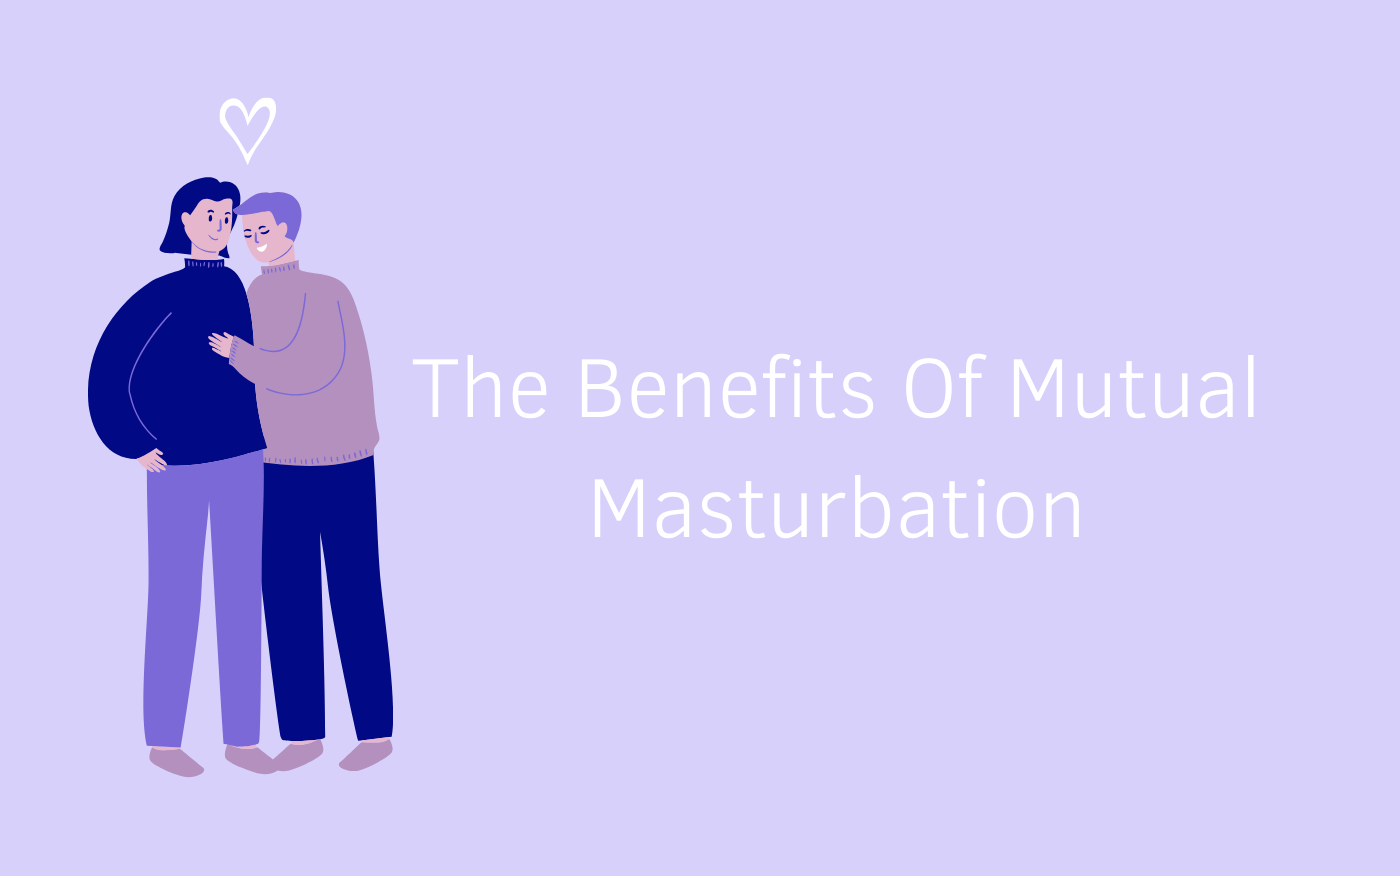 What Are The Benefits Of Mutual Masturbation?